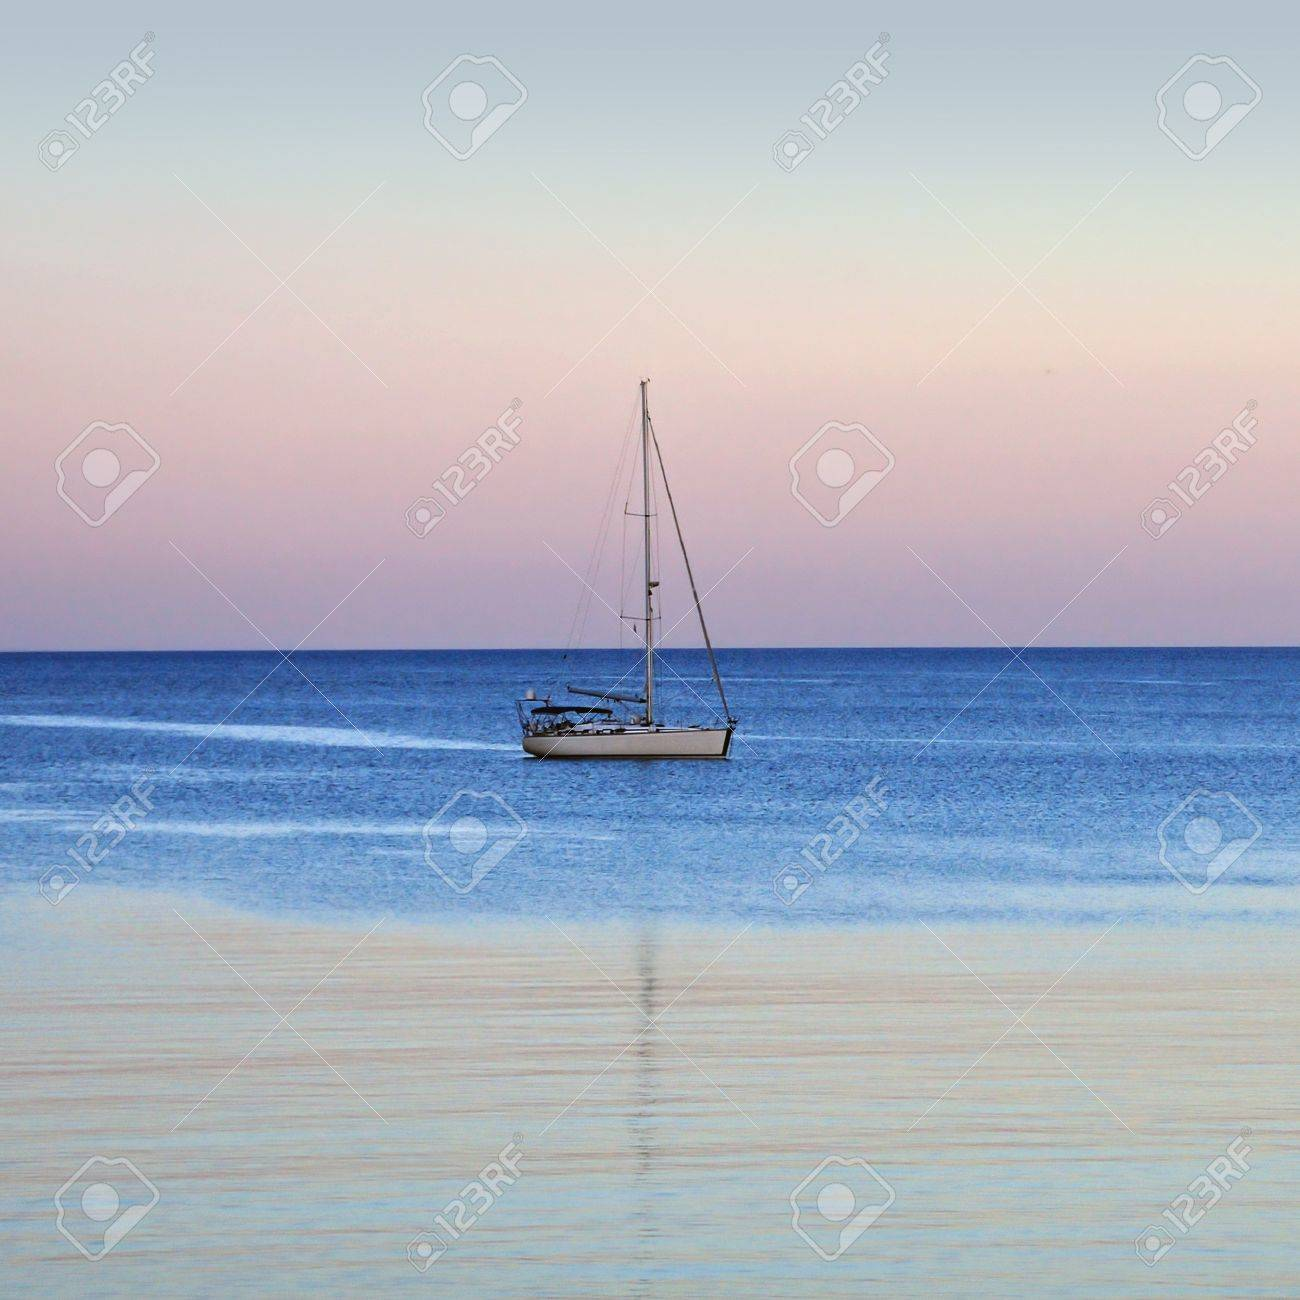 Sailboat reflections on sea water. Sunset sea and sky horizon. Stock Photo - 9217193